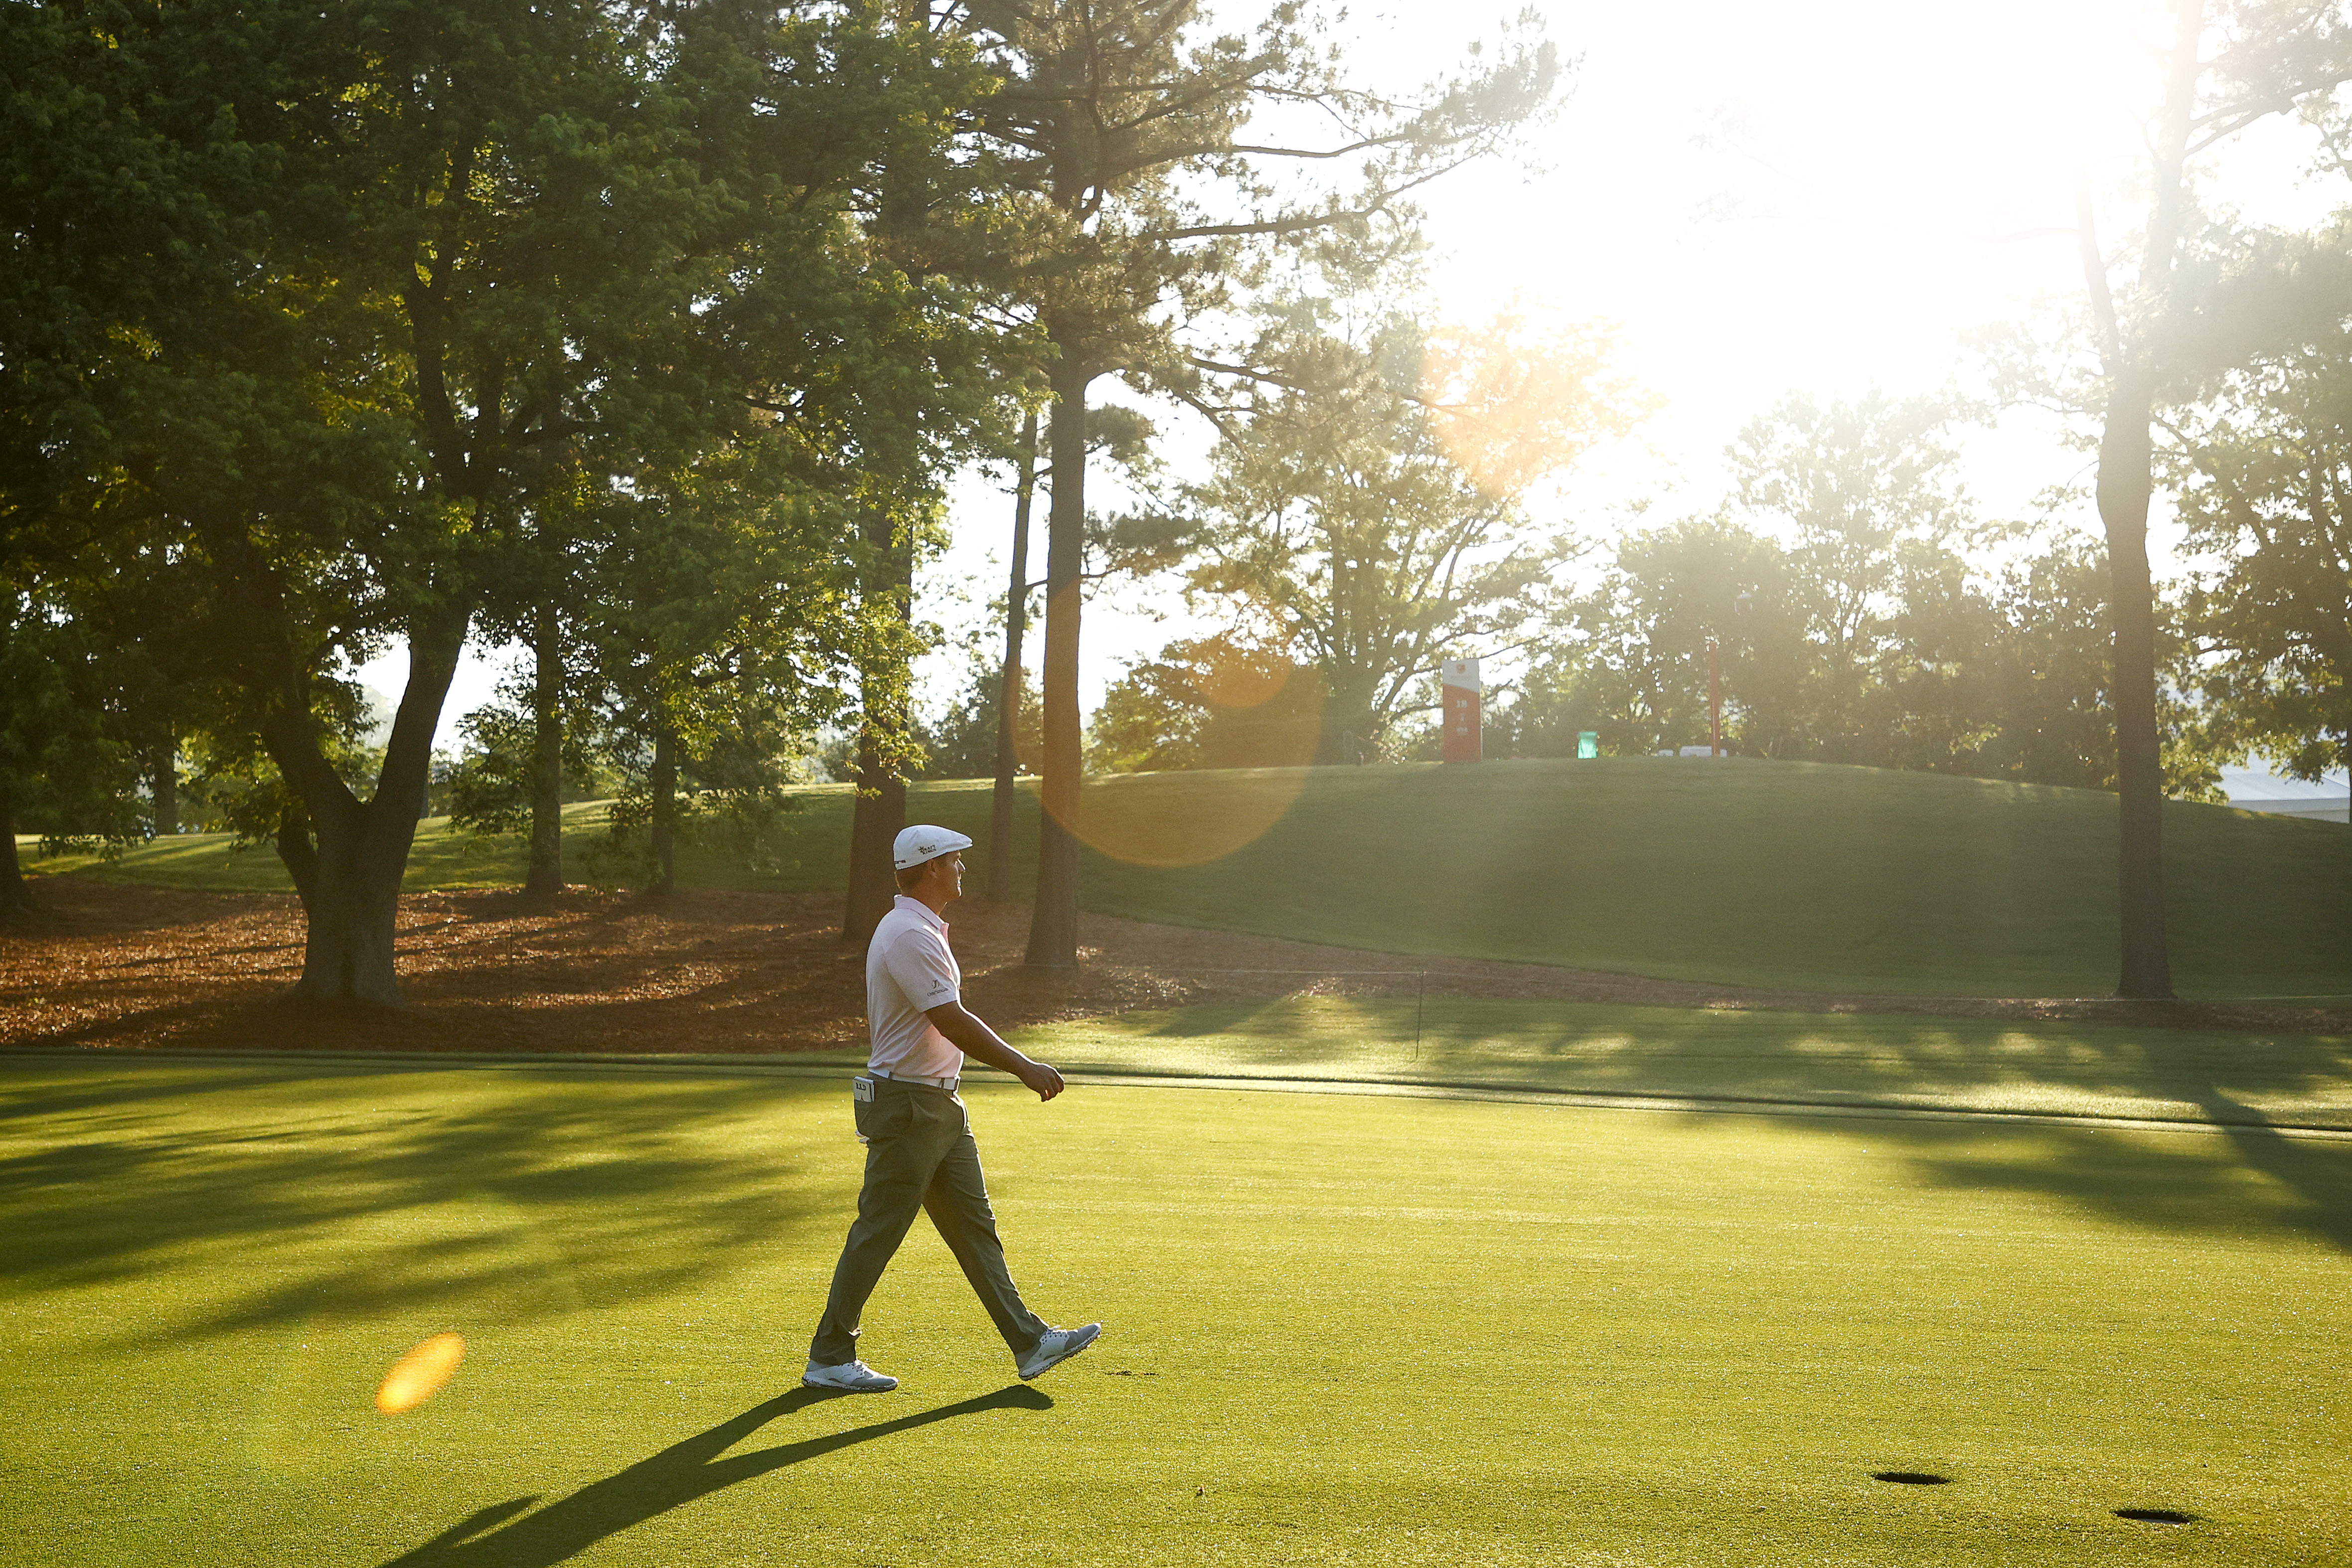 Bryson DeChambeau of the United States walks the tenth hole during the second round of the 2021 Wells Fargo Championship at Quail Hollow Club on May 07, 2021 in Charlotte, North Carolina.